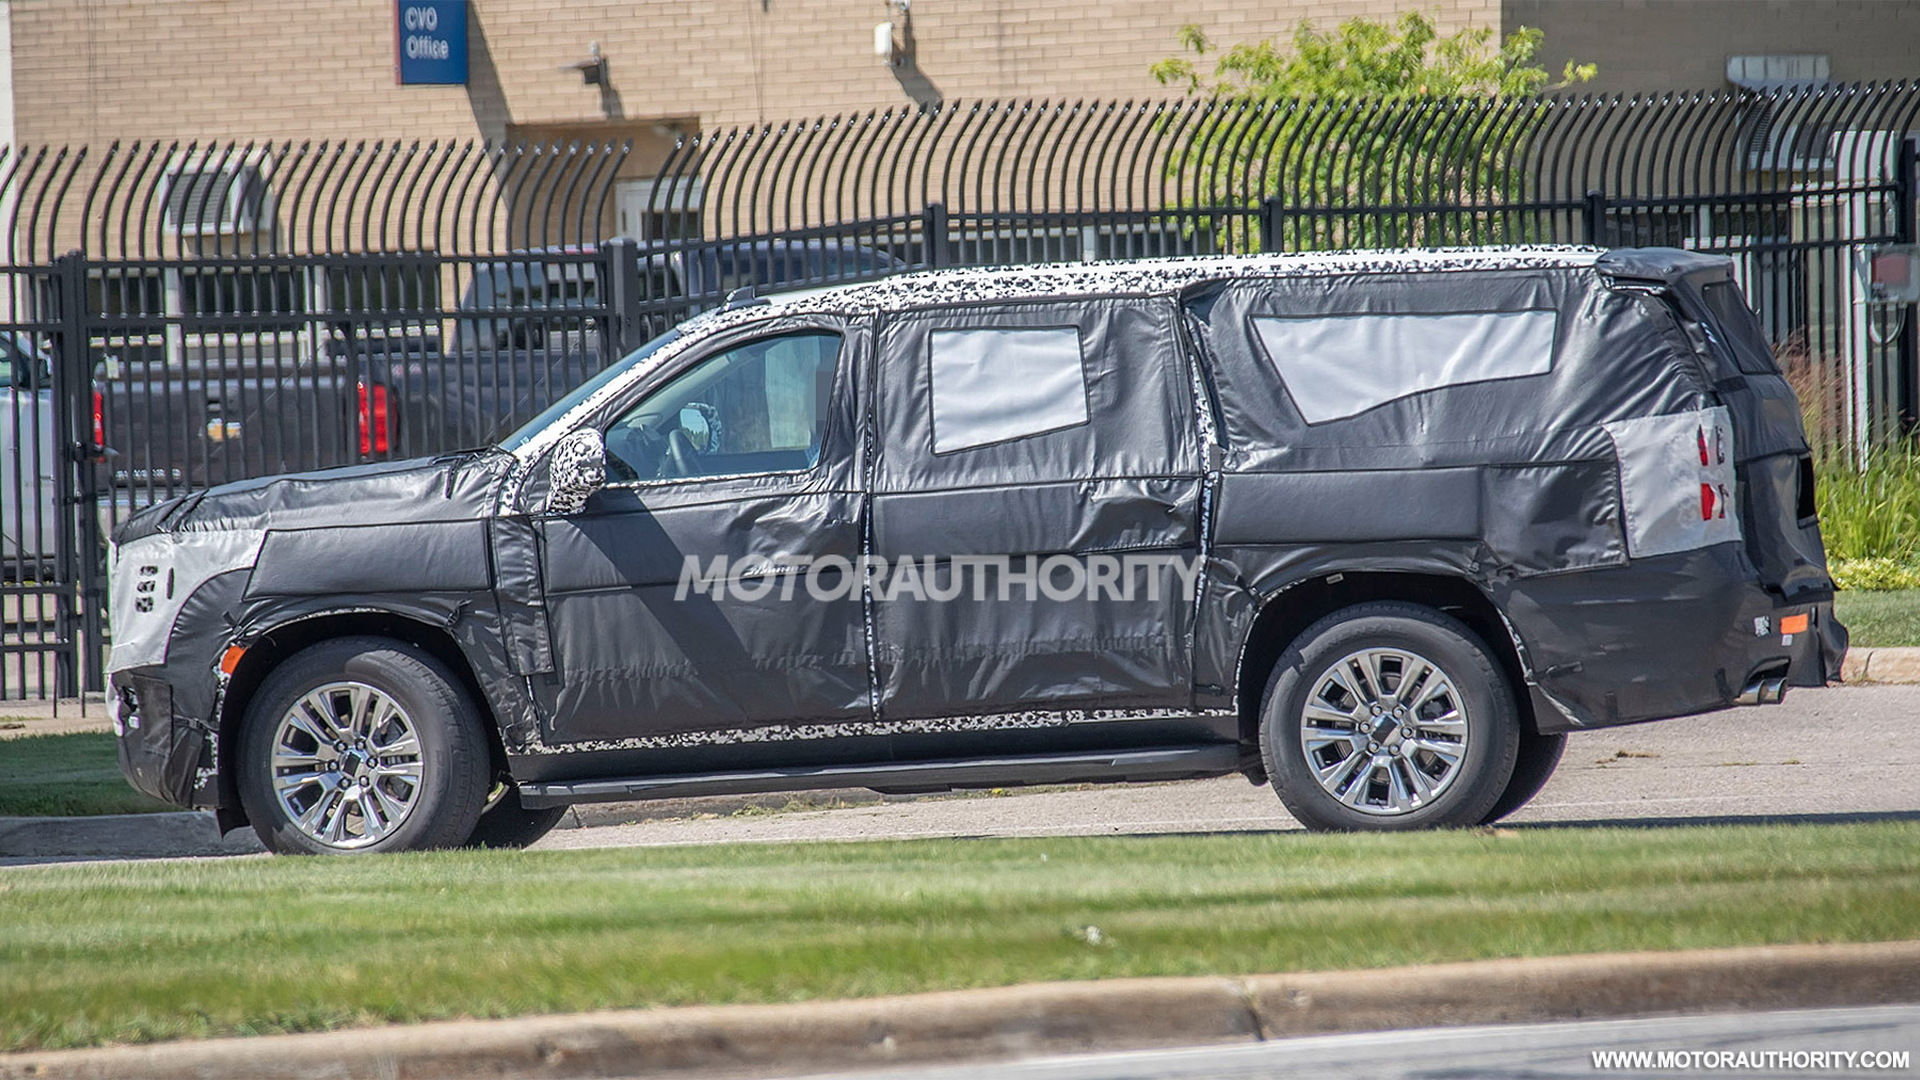 2021 GMC Yukon XL spy shots - Photo credit: S. Baldauf/SB-Medien